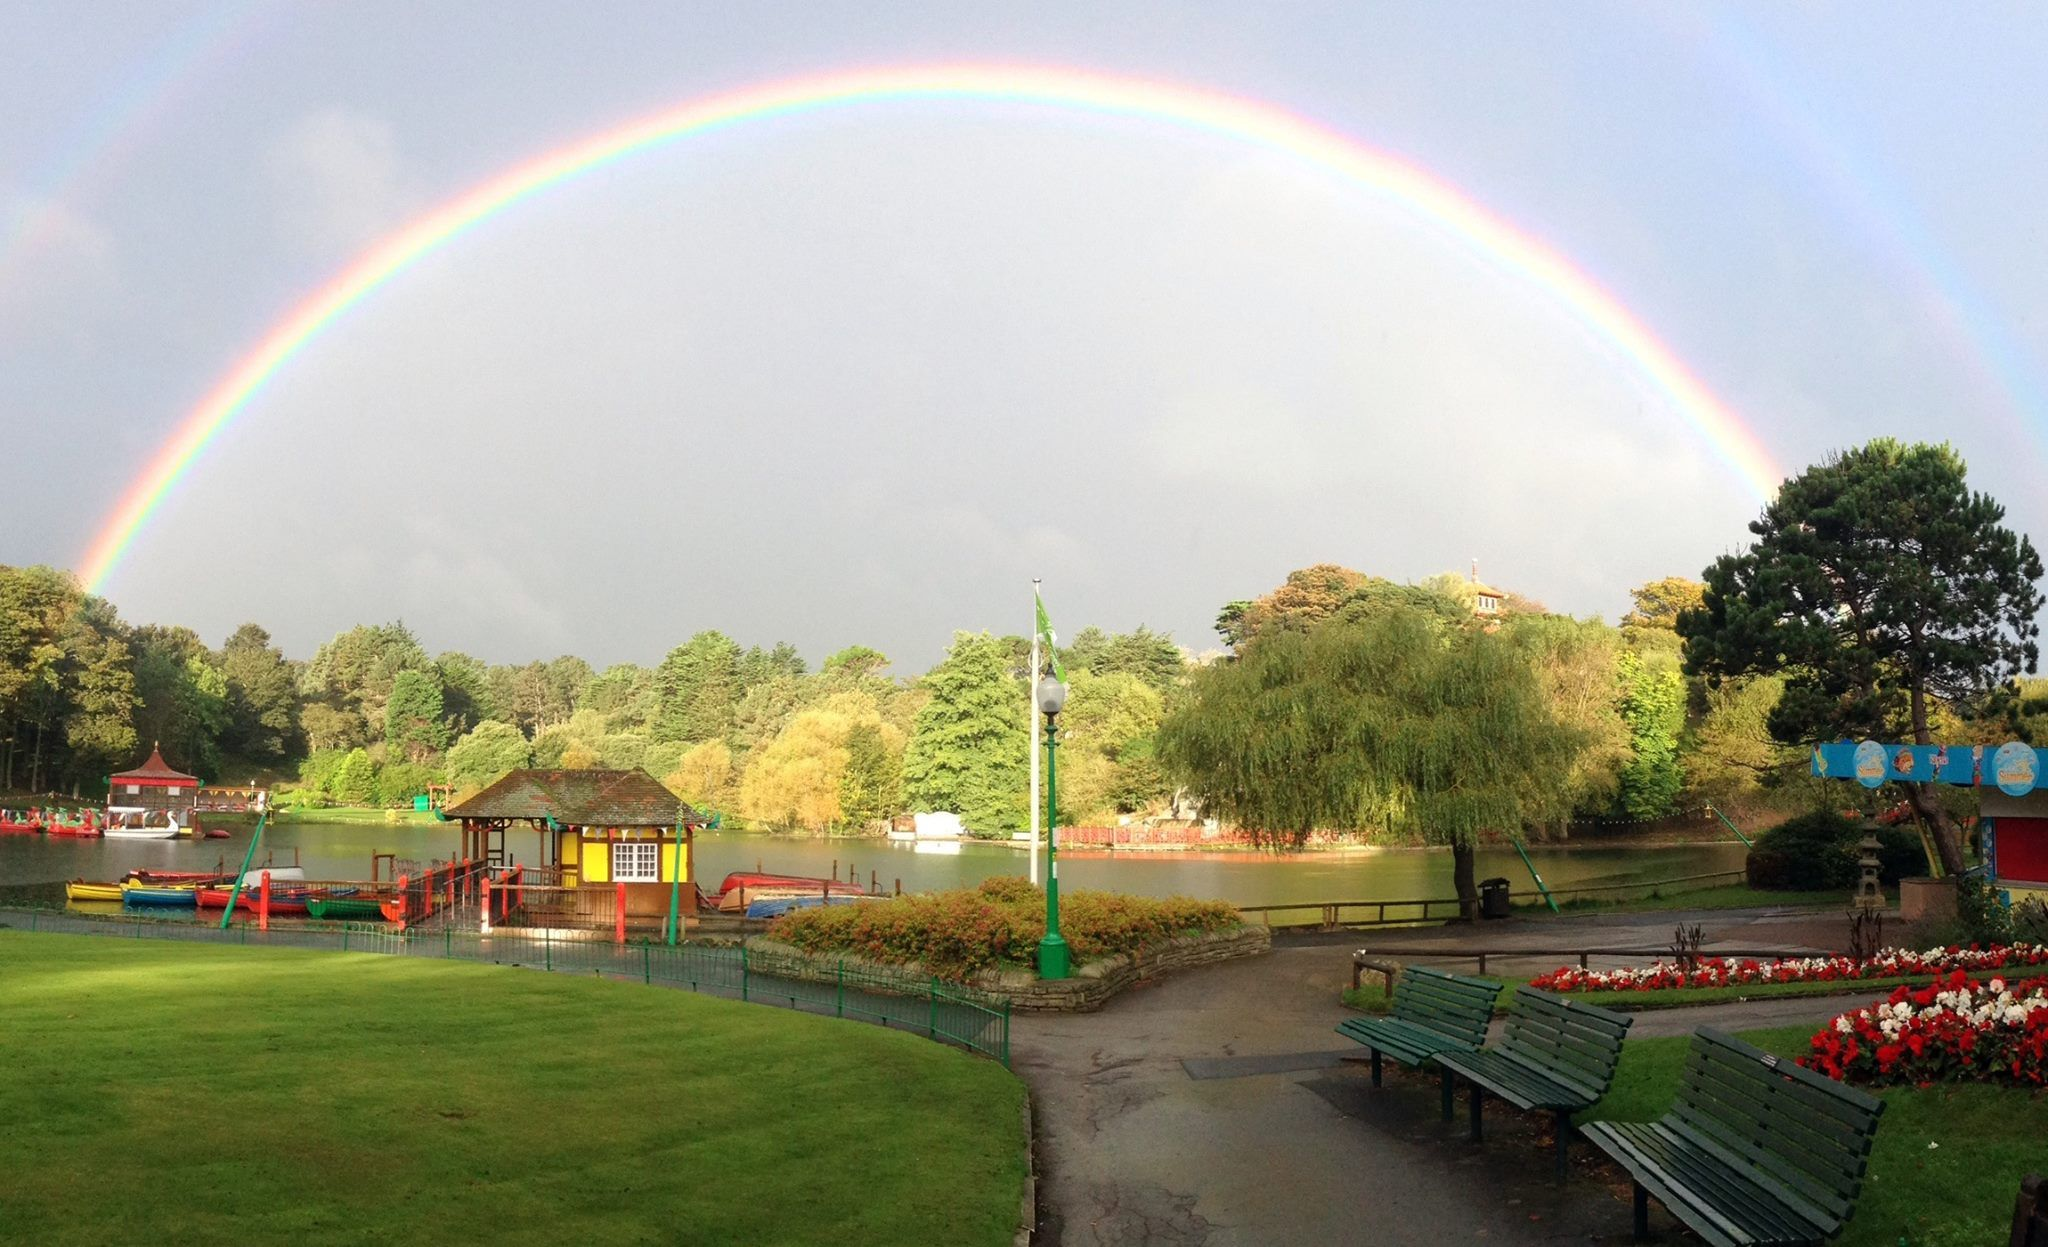 Double rainbow over Peasholm Park in Scarborough by Rose Habberley.